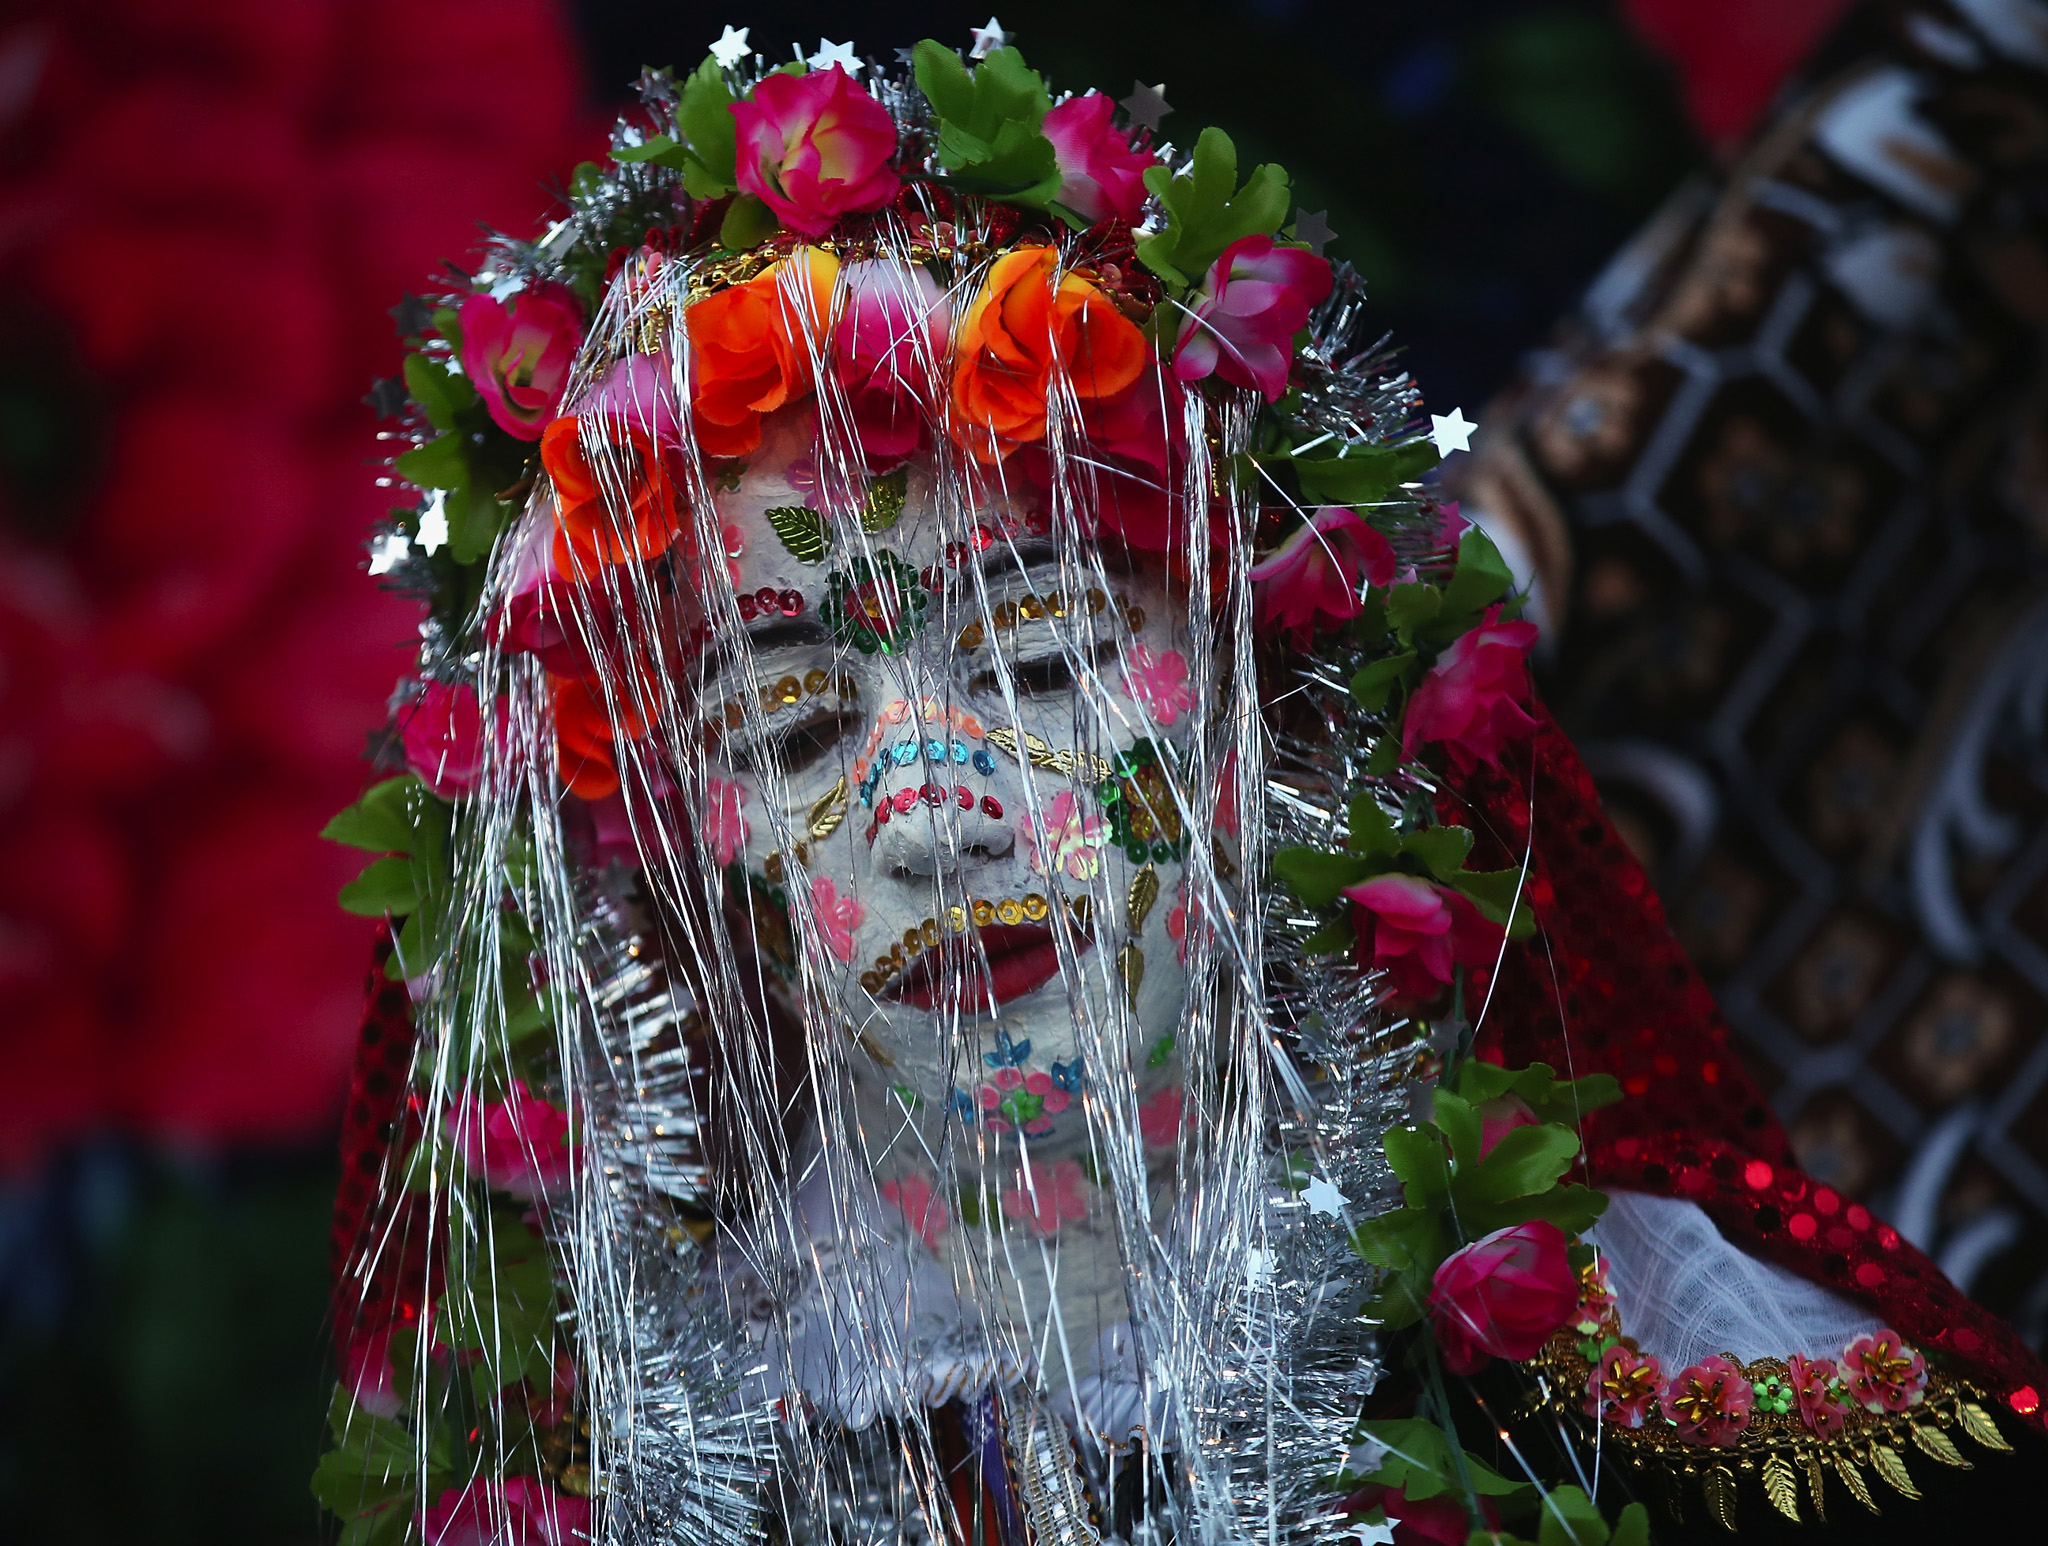 """Bride Fatme Inus, her face painted white and decorated with sequins, emerges to present herself to villagers towards the end of her two-day wedding to Mustafa Sirakov in Ribnovo, Bulgaria. The practice of painting the bride's face white and decorating it with sequins and coloured paint is called """"gelena"""" in Bulgarian, is unique to Ribnovo and is a tradition going back centuries. Ribnovo weddings only take place in the winter and the entire village participates with group dances on the main square. Ribnovo, located in the mountains of southern Bulgaria, is predominantly inhabited by Pomaks, a Muslim ethnic minority who are the descendants of Christian Bulgarians who converted to Islam during Ottoman rule."""